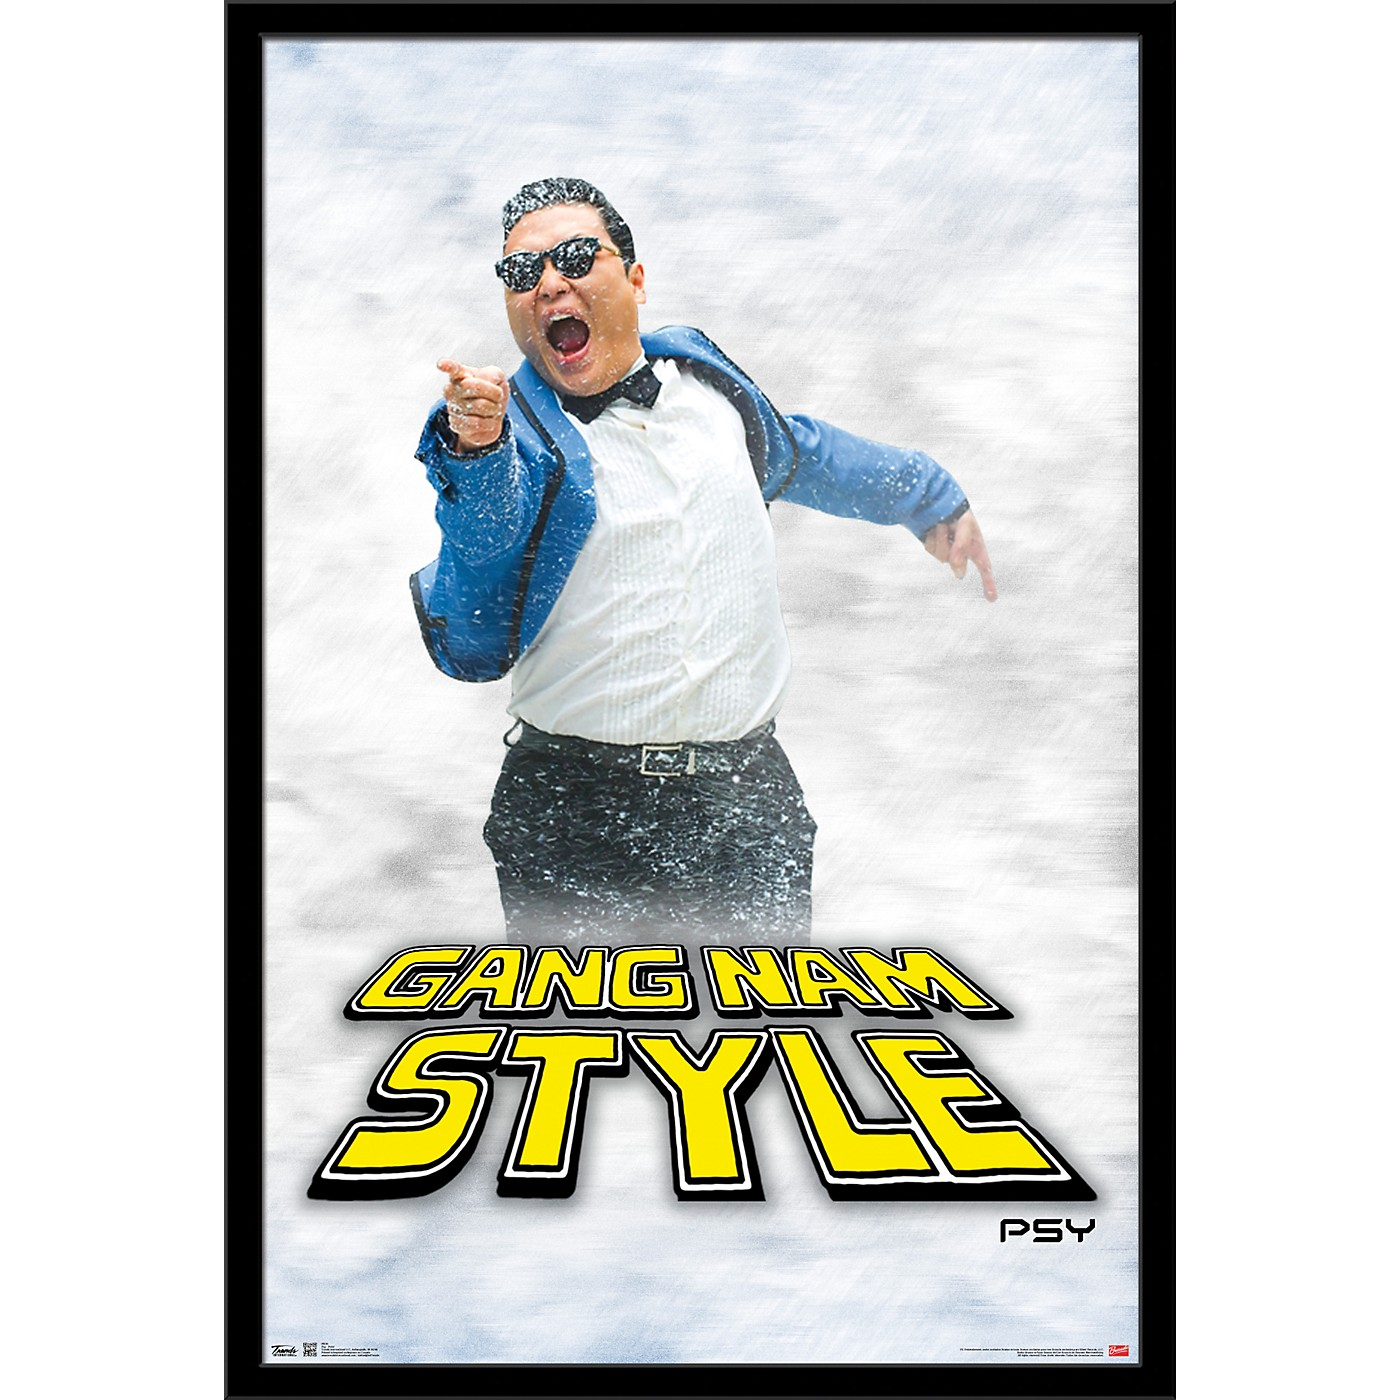 Trends International Psy - Point Poster thumbnail